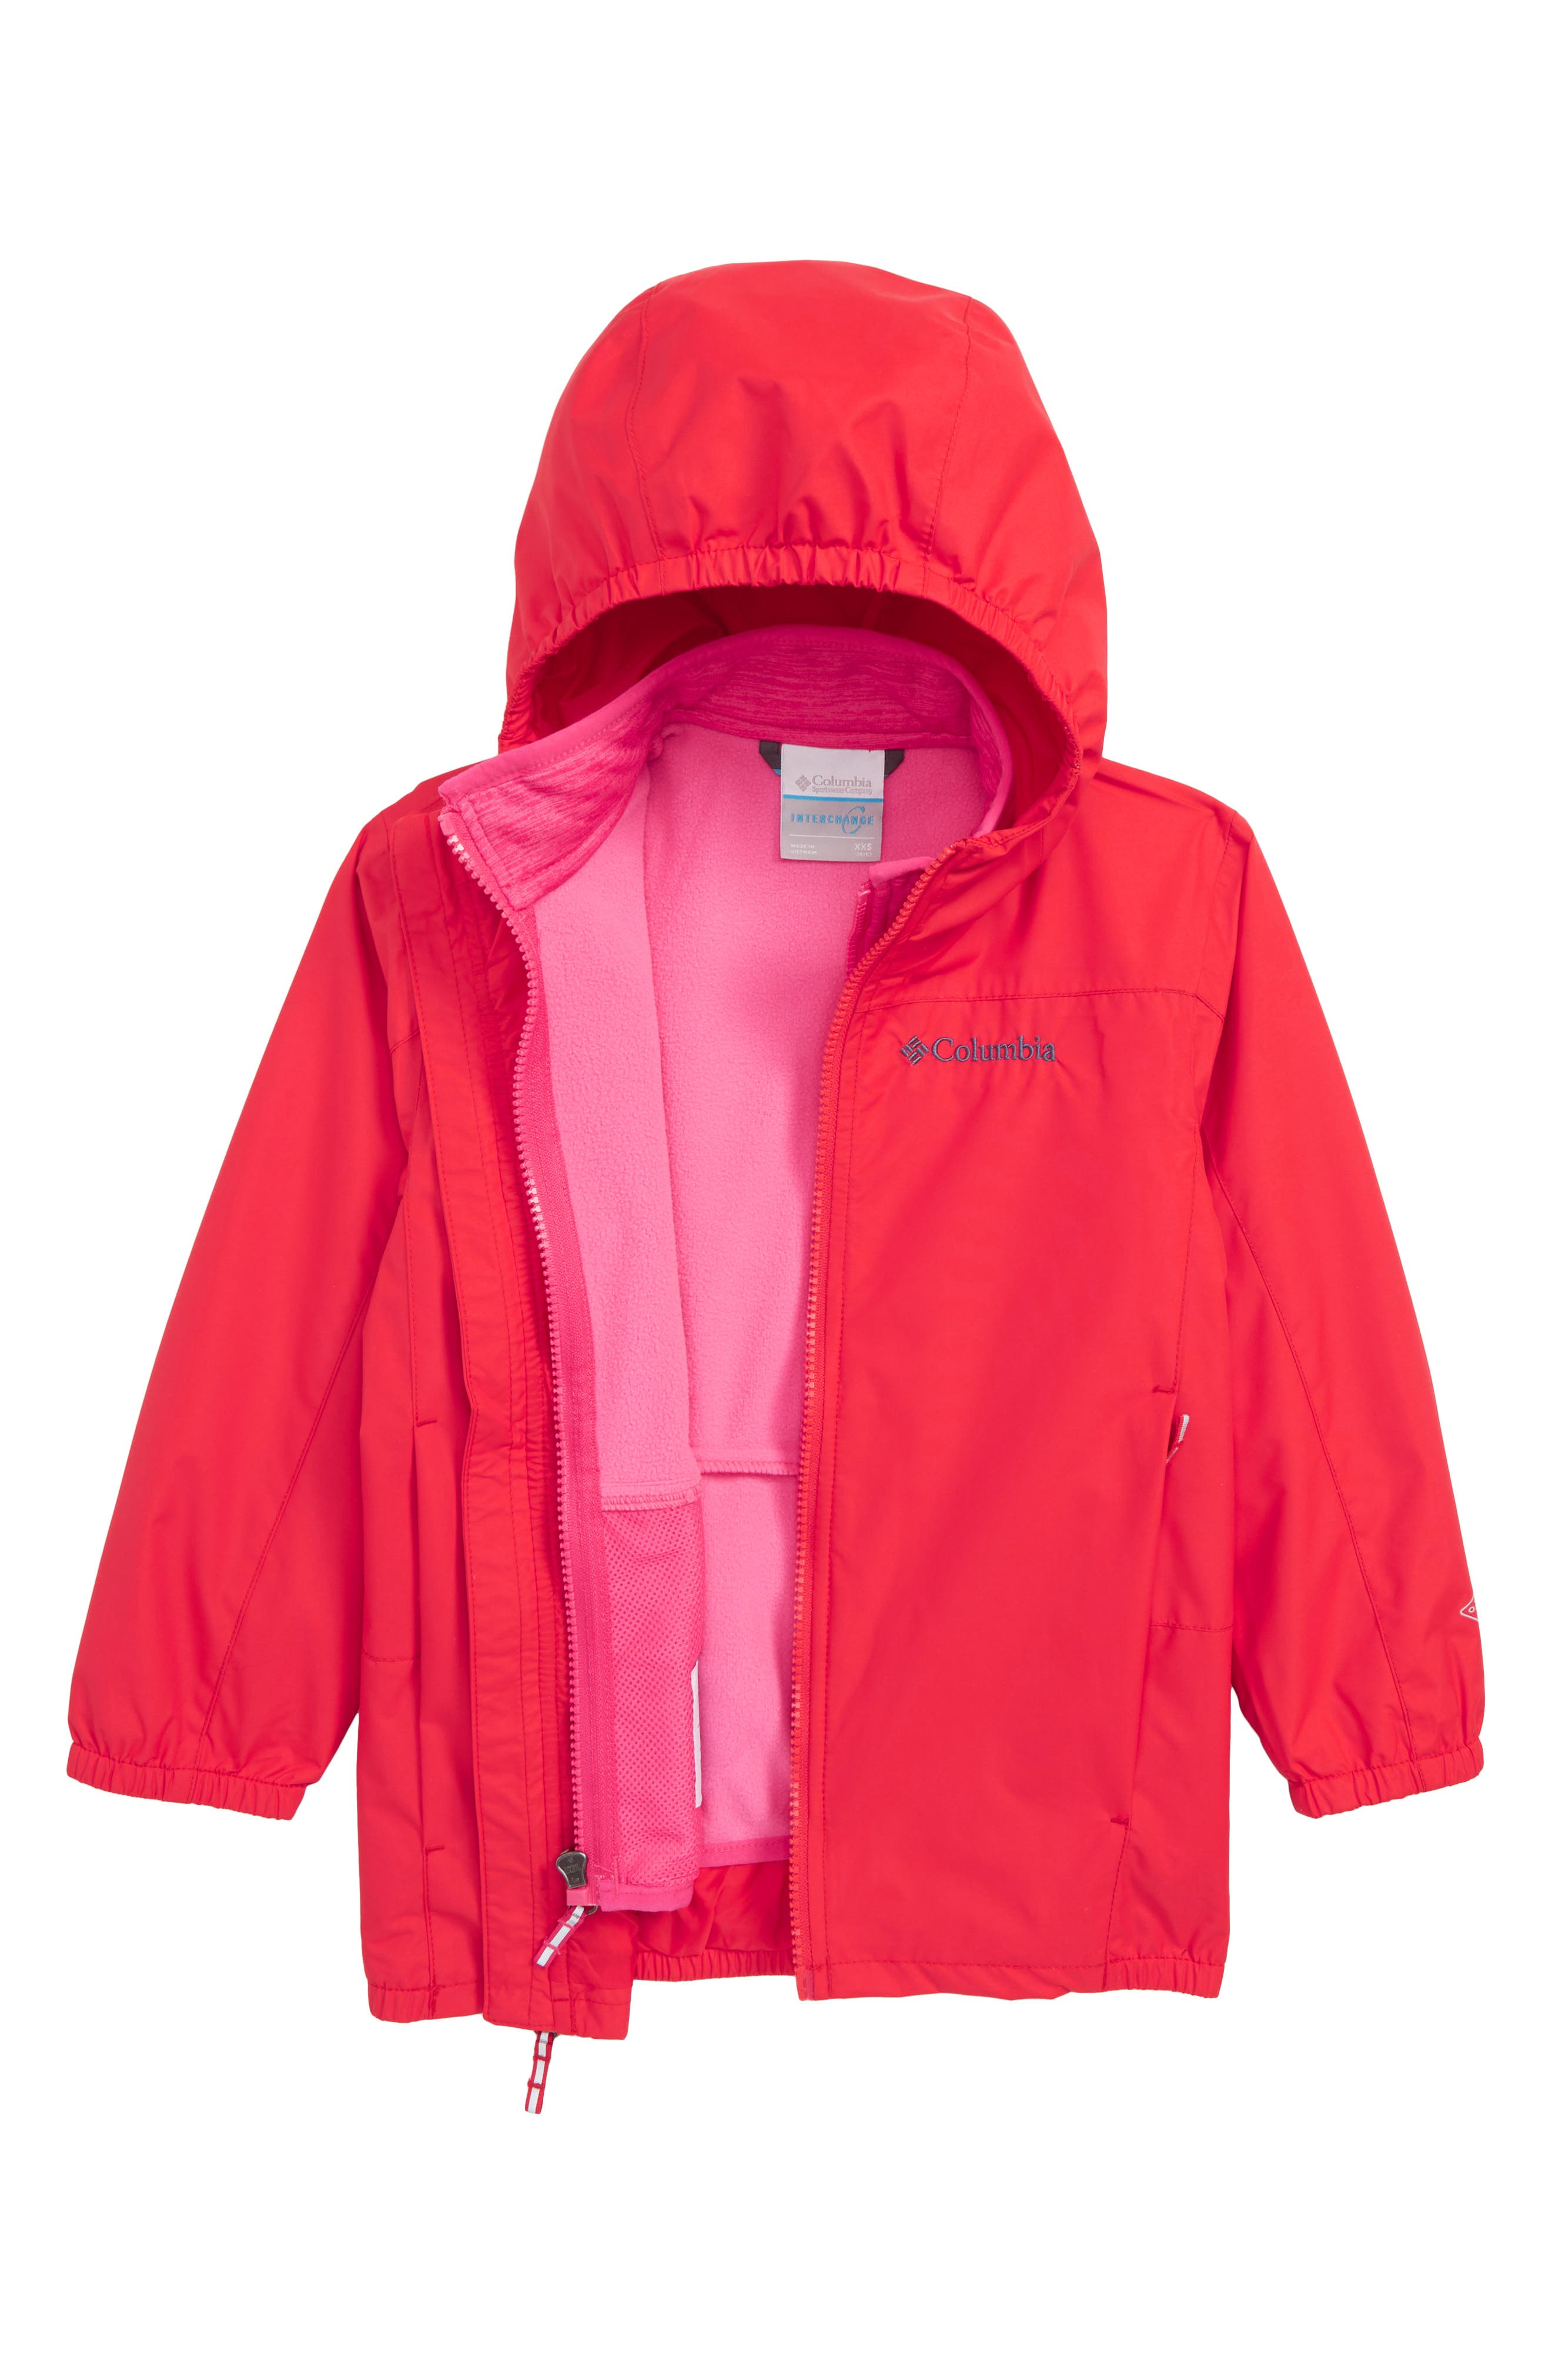 Explore S'more Omni-Tech<sup>™</sup> Waterproof 3-in-1 Jacket,                             Main thumbnail 1, color,                             RED SPARK DARK HEATHER